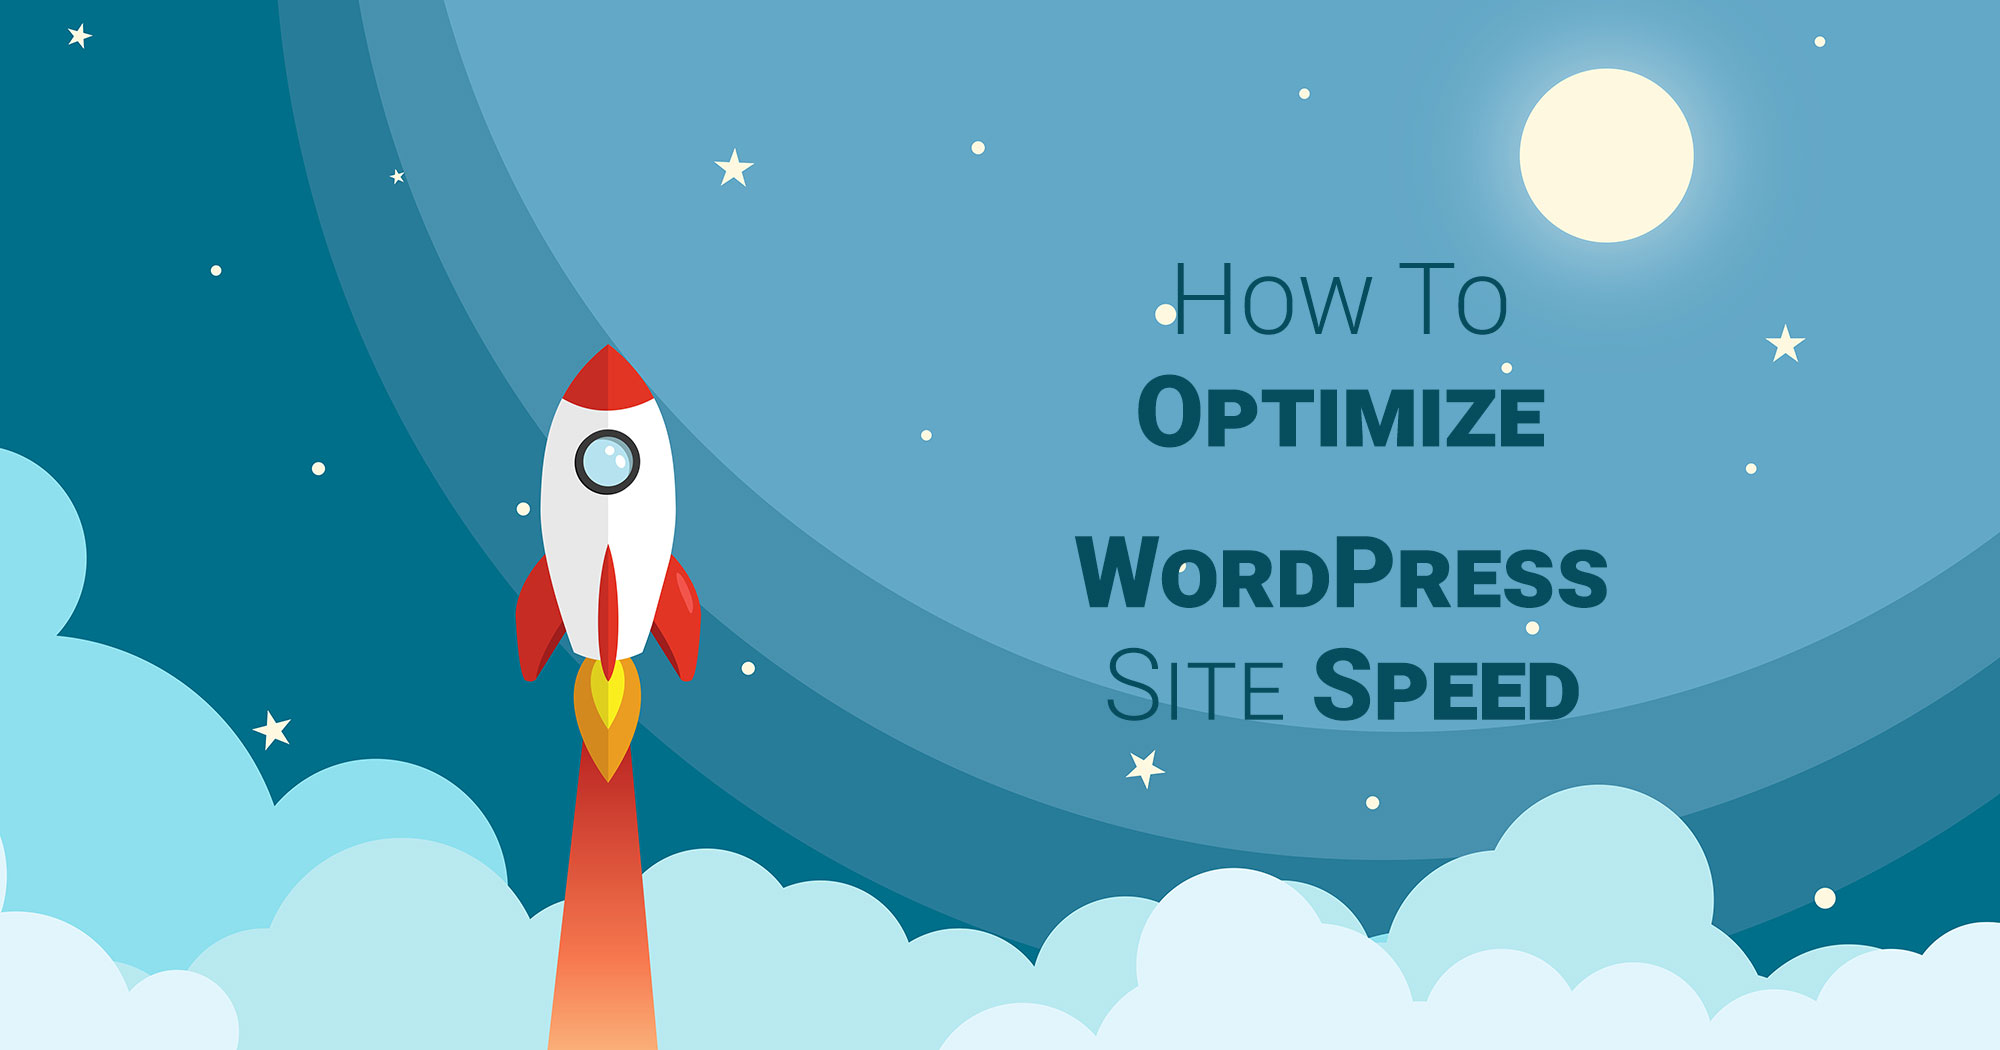 Optimize WordPress Site Speed